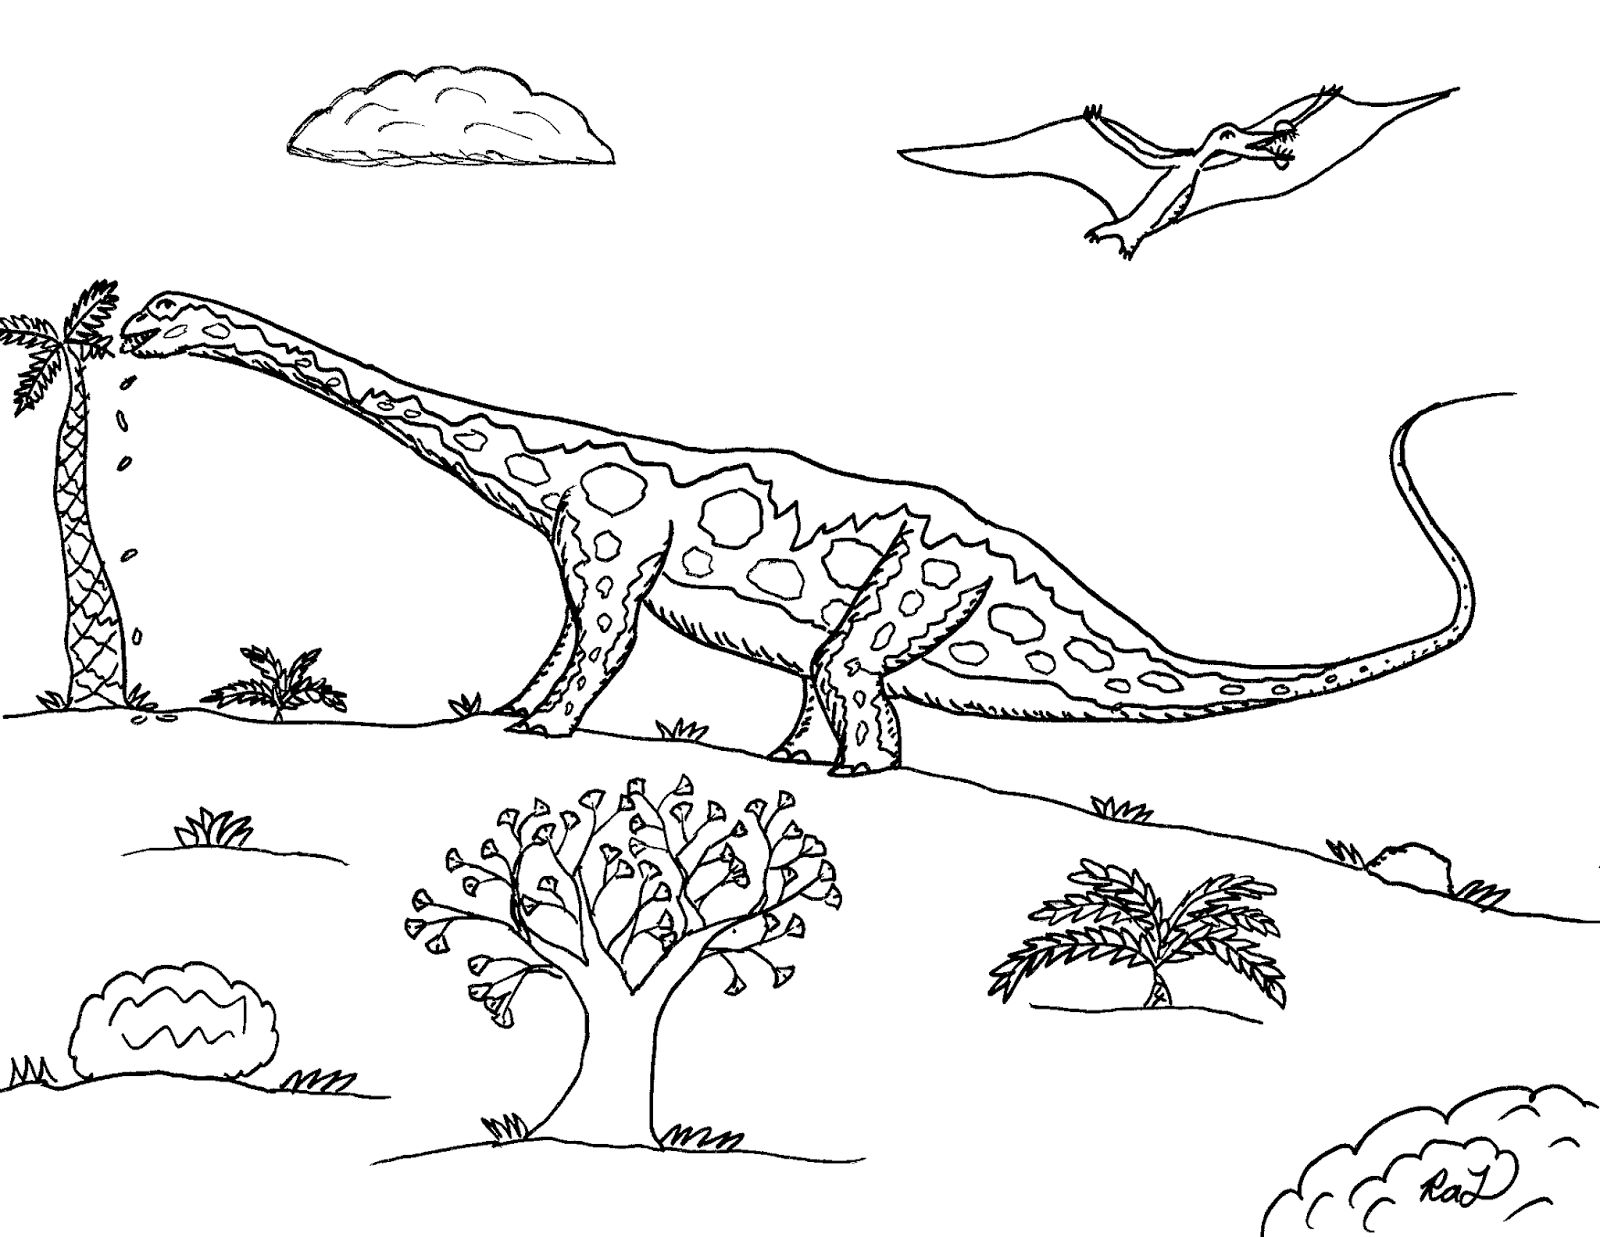 Robin S Great Coloring Pages Biggest Dinosaurs The Sauropods